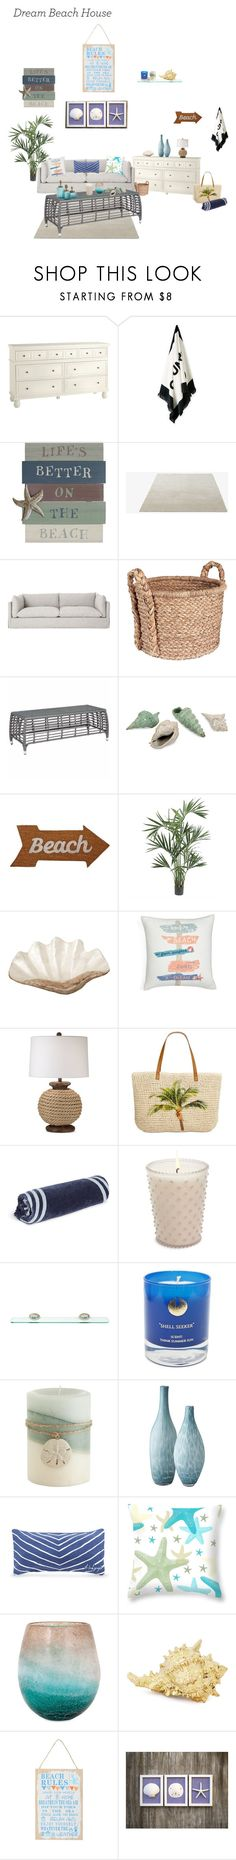 """""""Beach house"""" by xxotterspacexx ❤ liked on Polyvore featuring interior, interiors, interior design, home, home decor, interior decorating, Pier 1 Imports, &Tradition, Household Essentials and Zuo"""